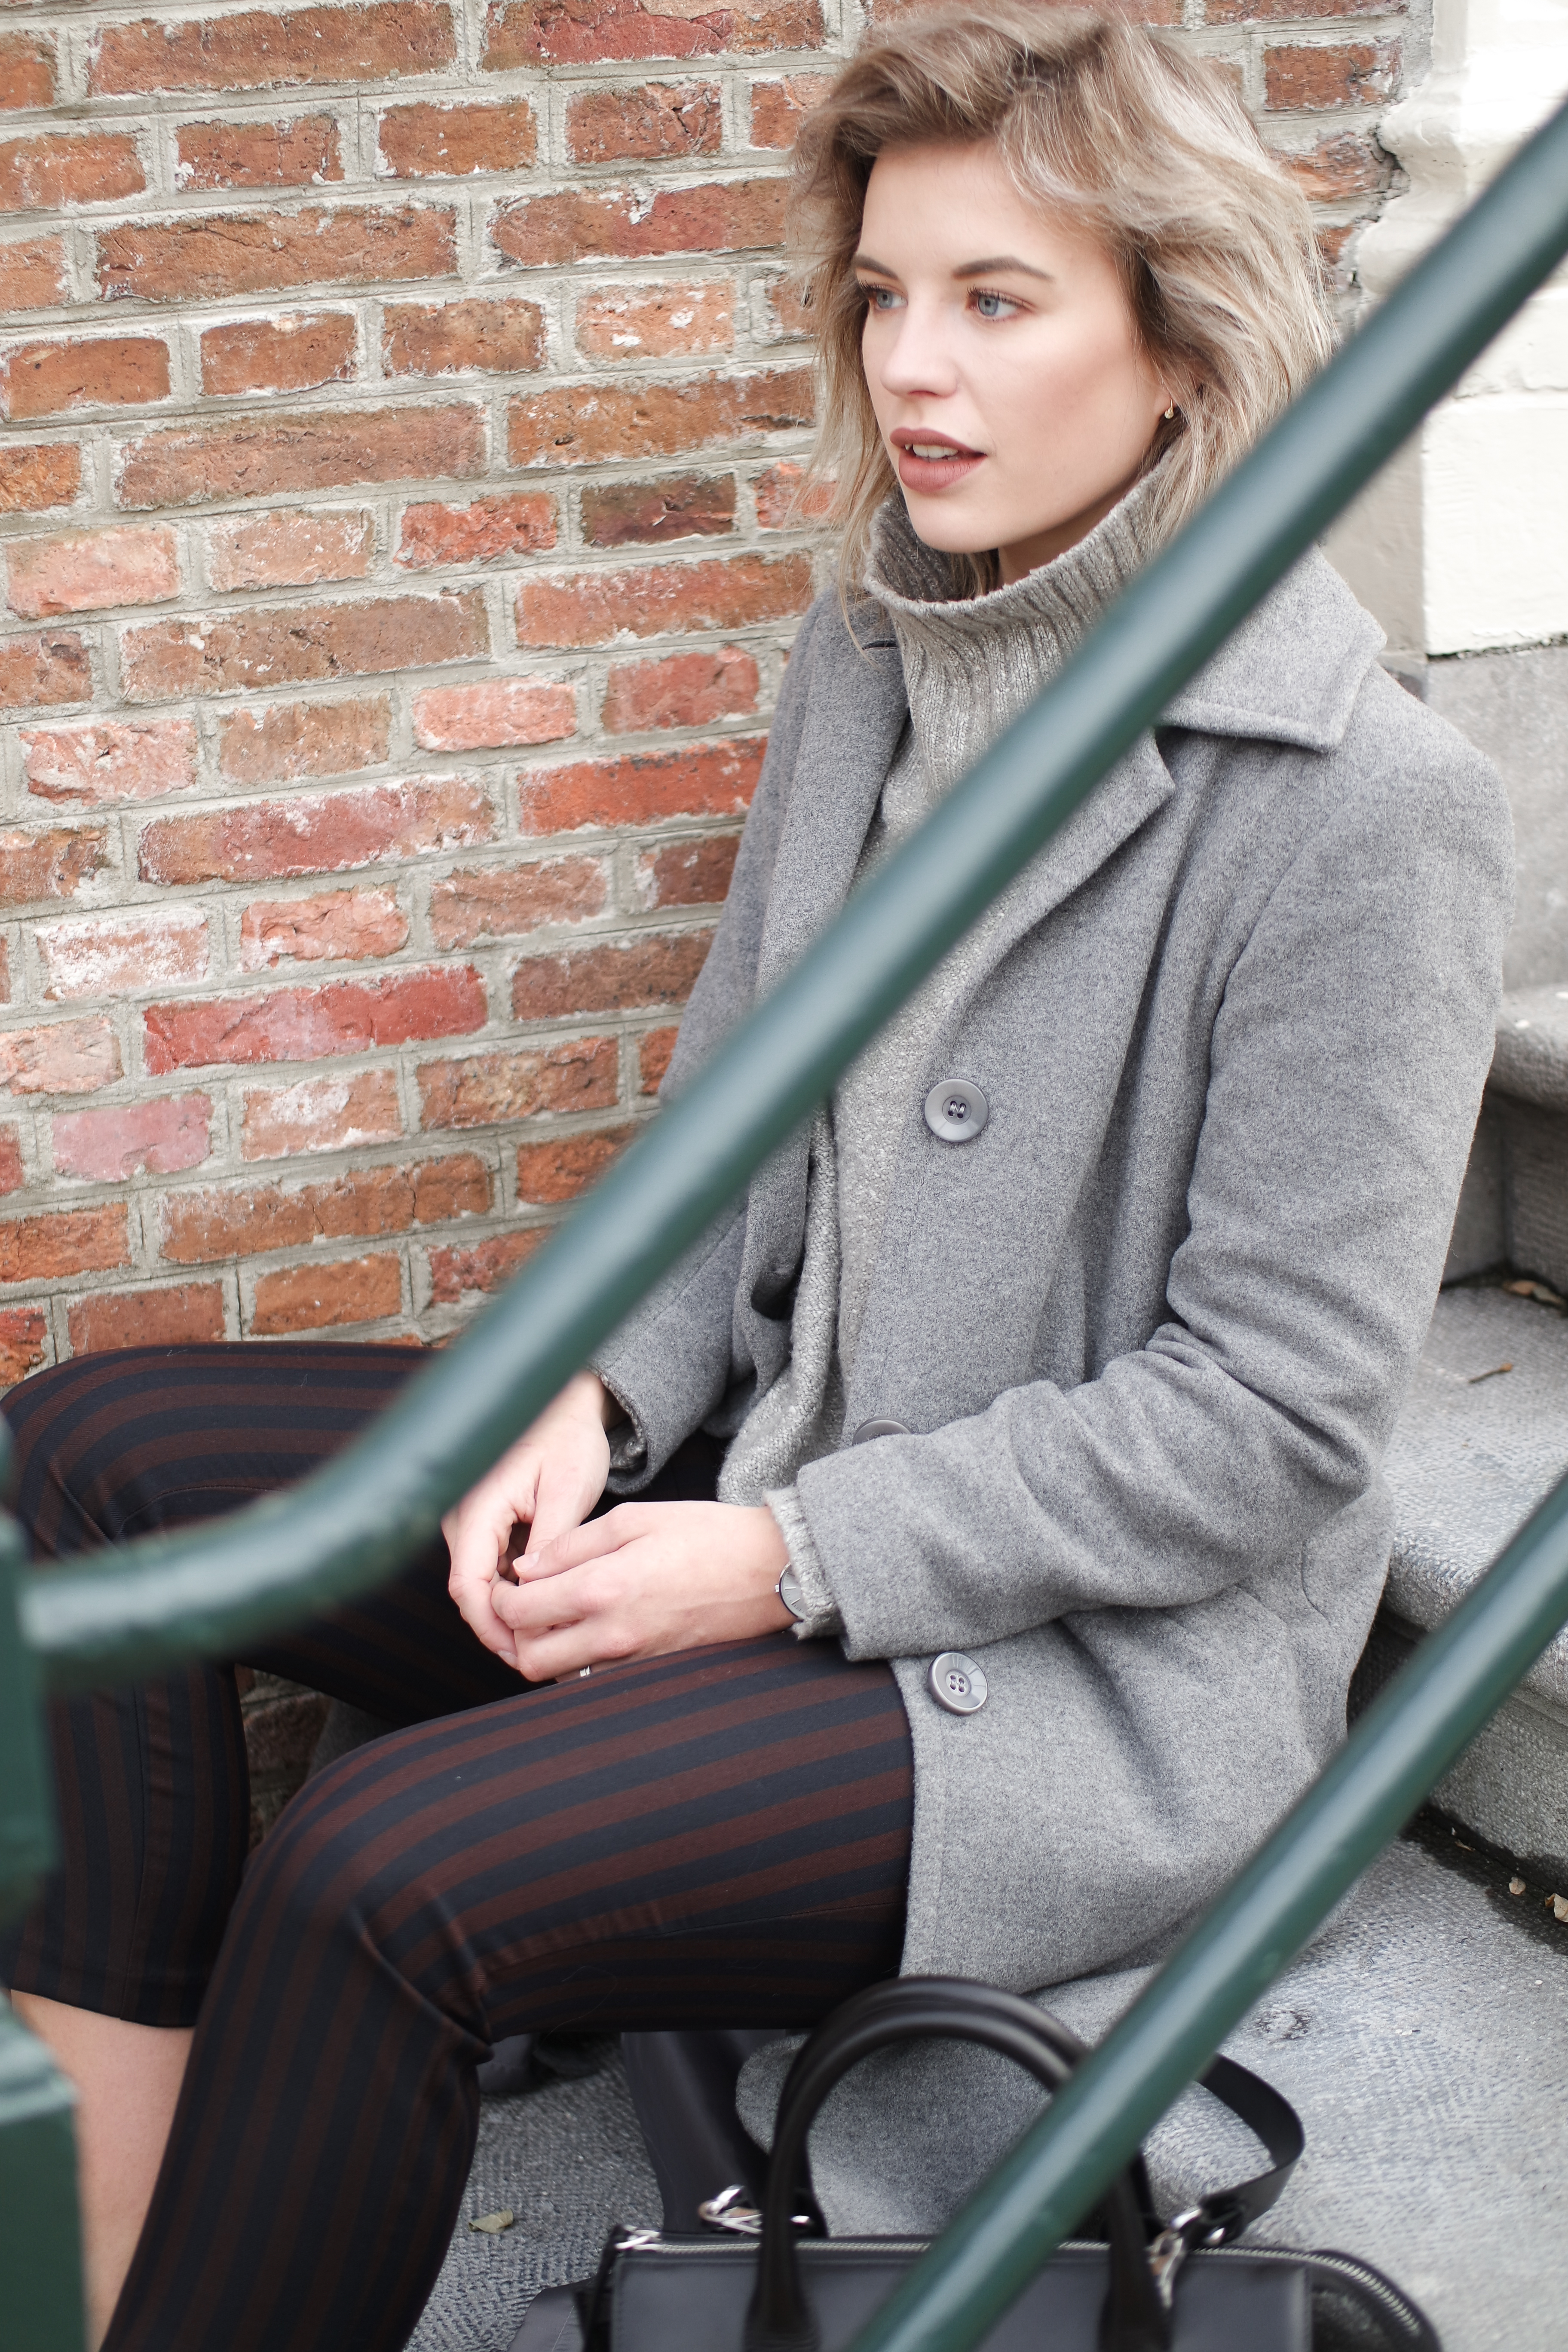 RED REIDING HOOD: Fashion blogger wearing striped cropped pants outfit turtleneck long grey coat